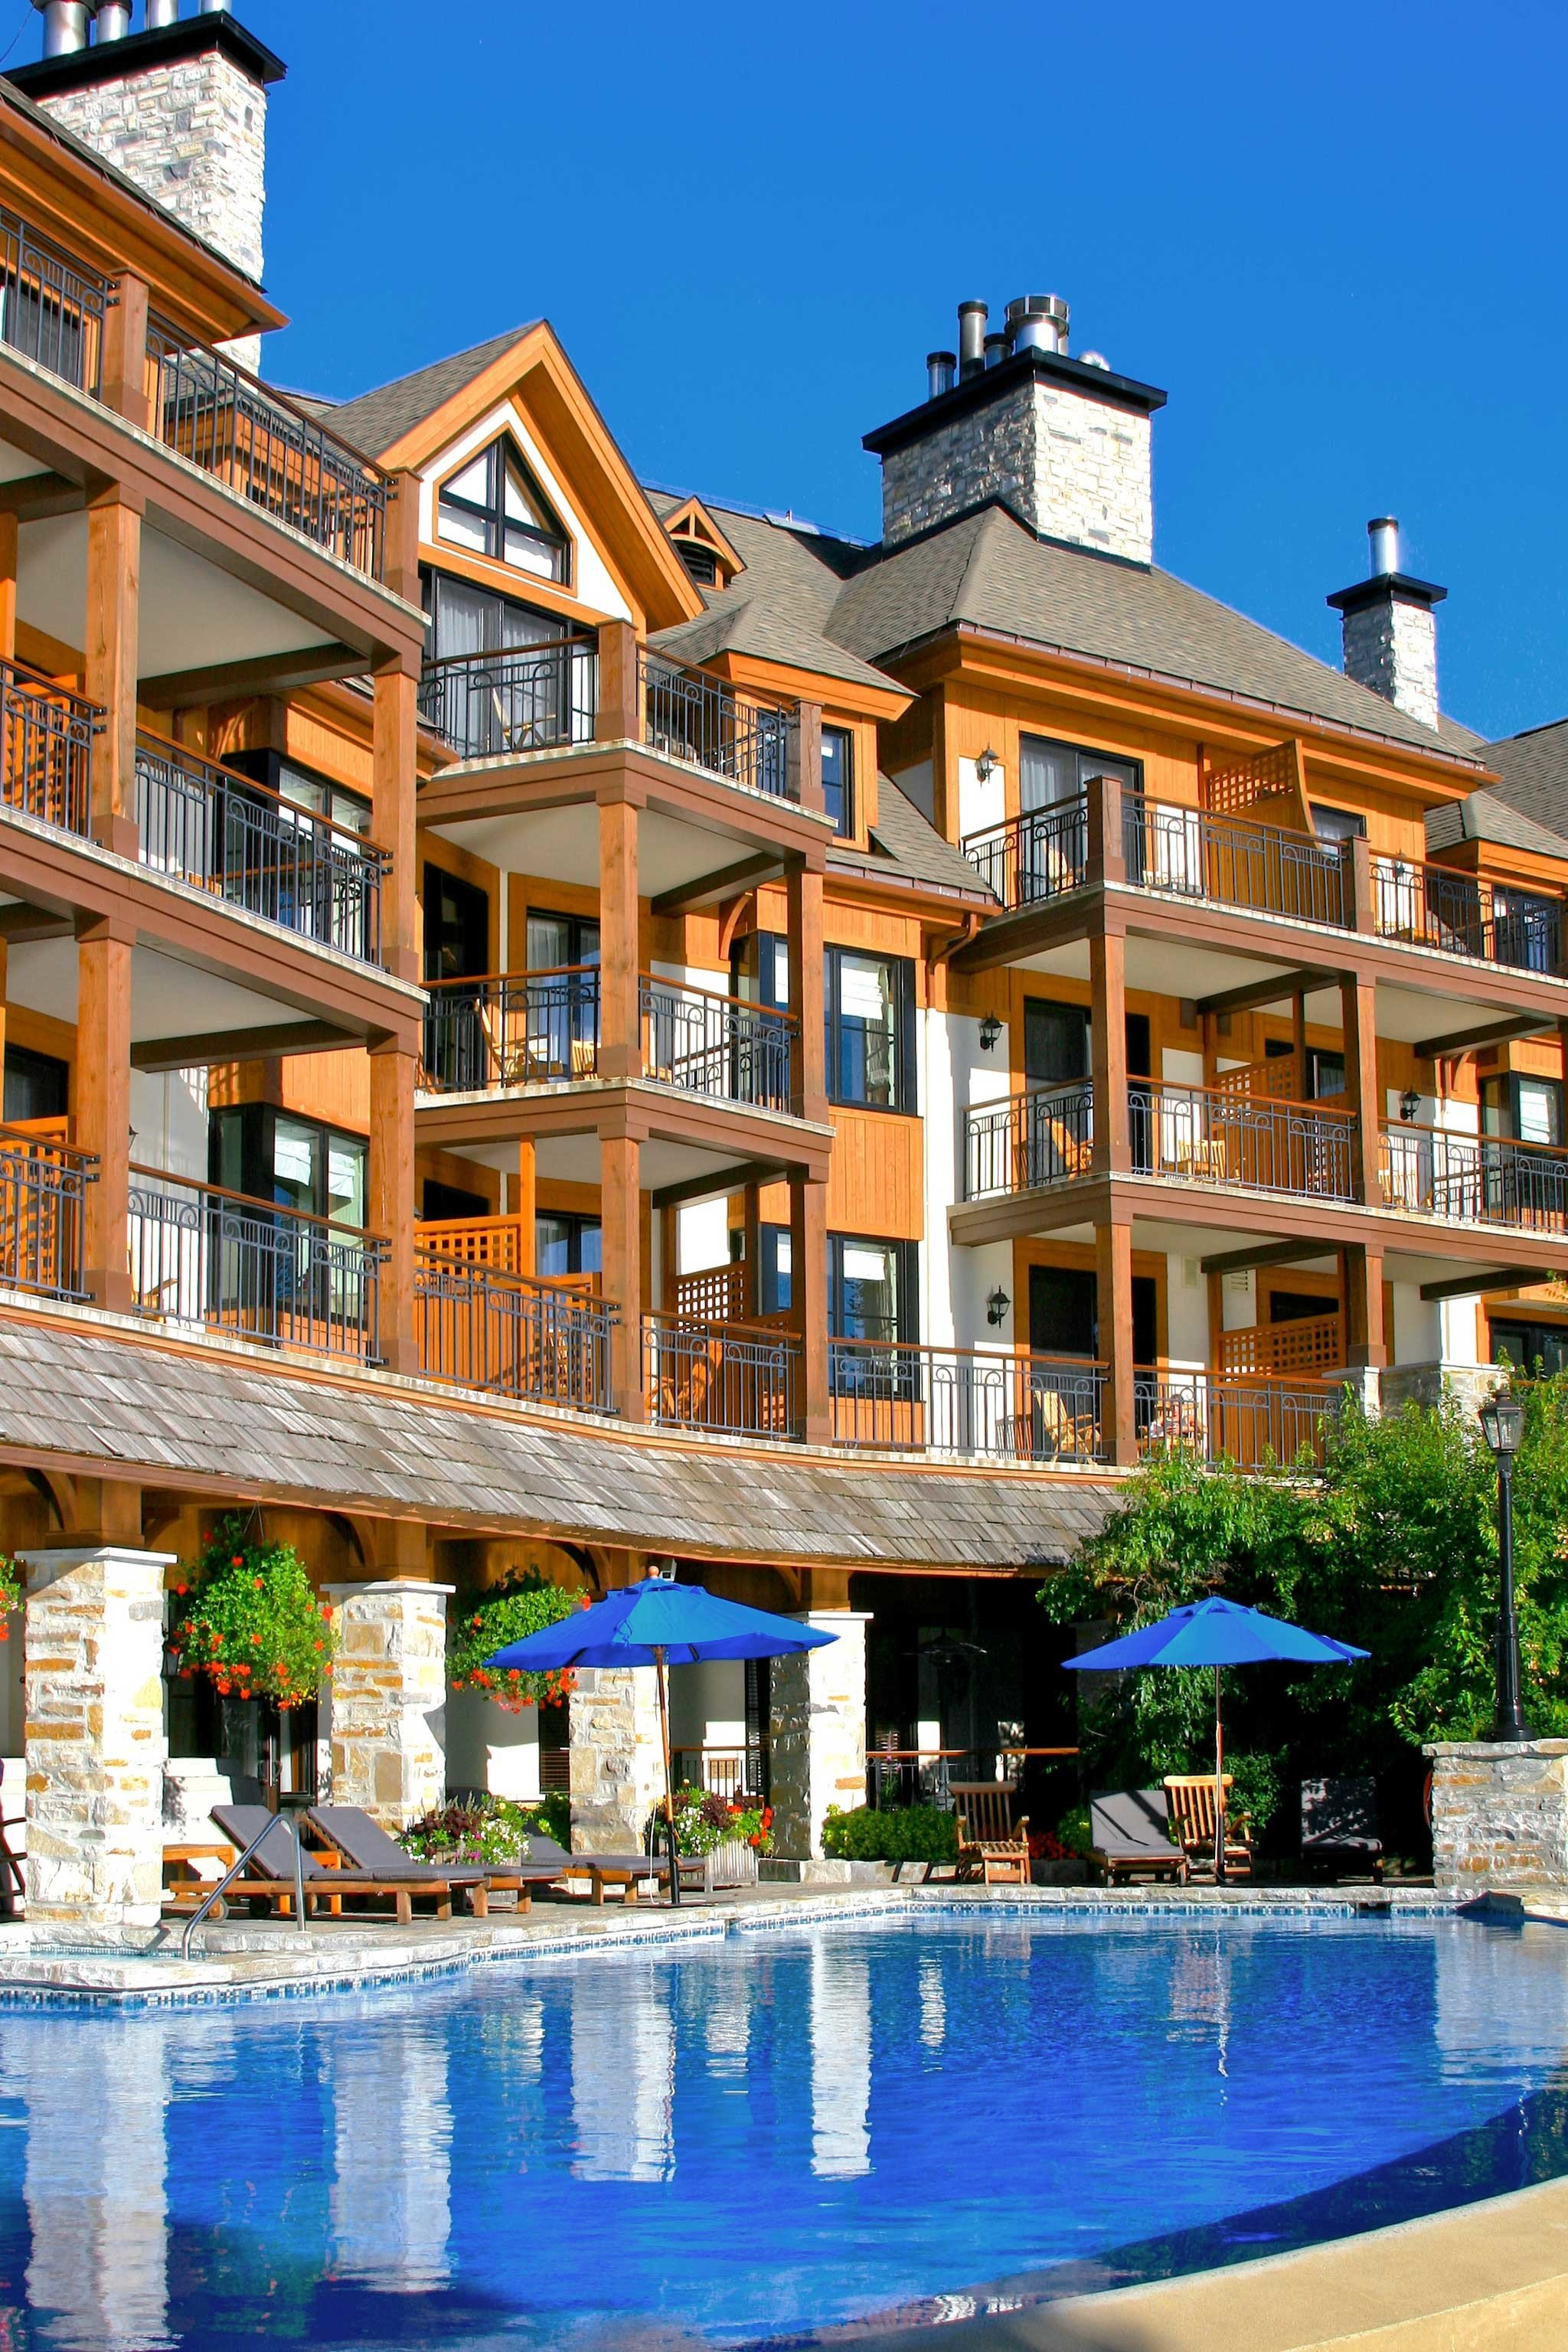 alpine skiing Architecture Buildings East Coast USA Exterior Luxury Play Pool Resort Trip Ideas building property condominium Town house swimming pool plaza residential area home palace swimming